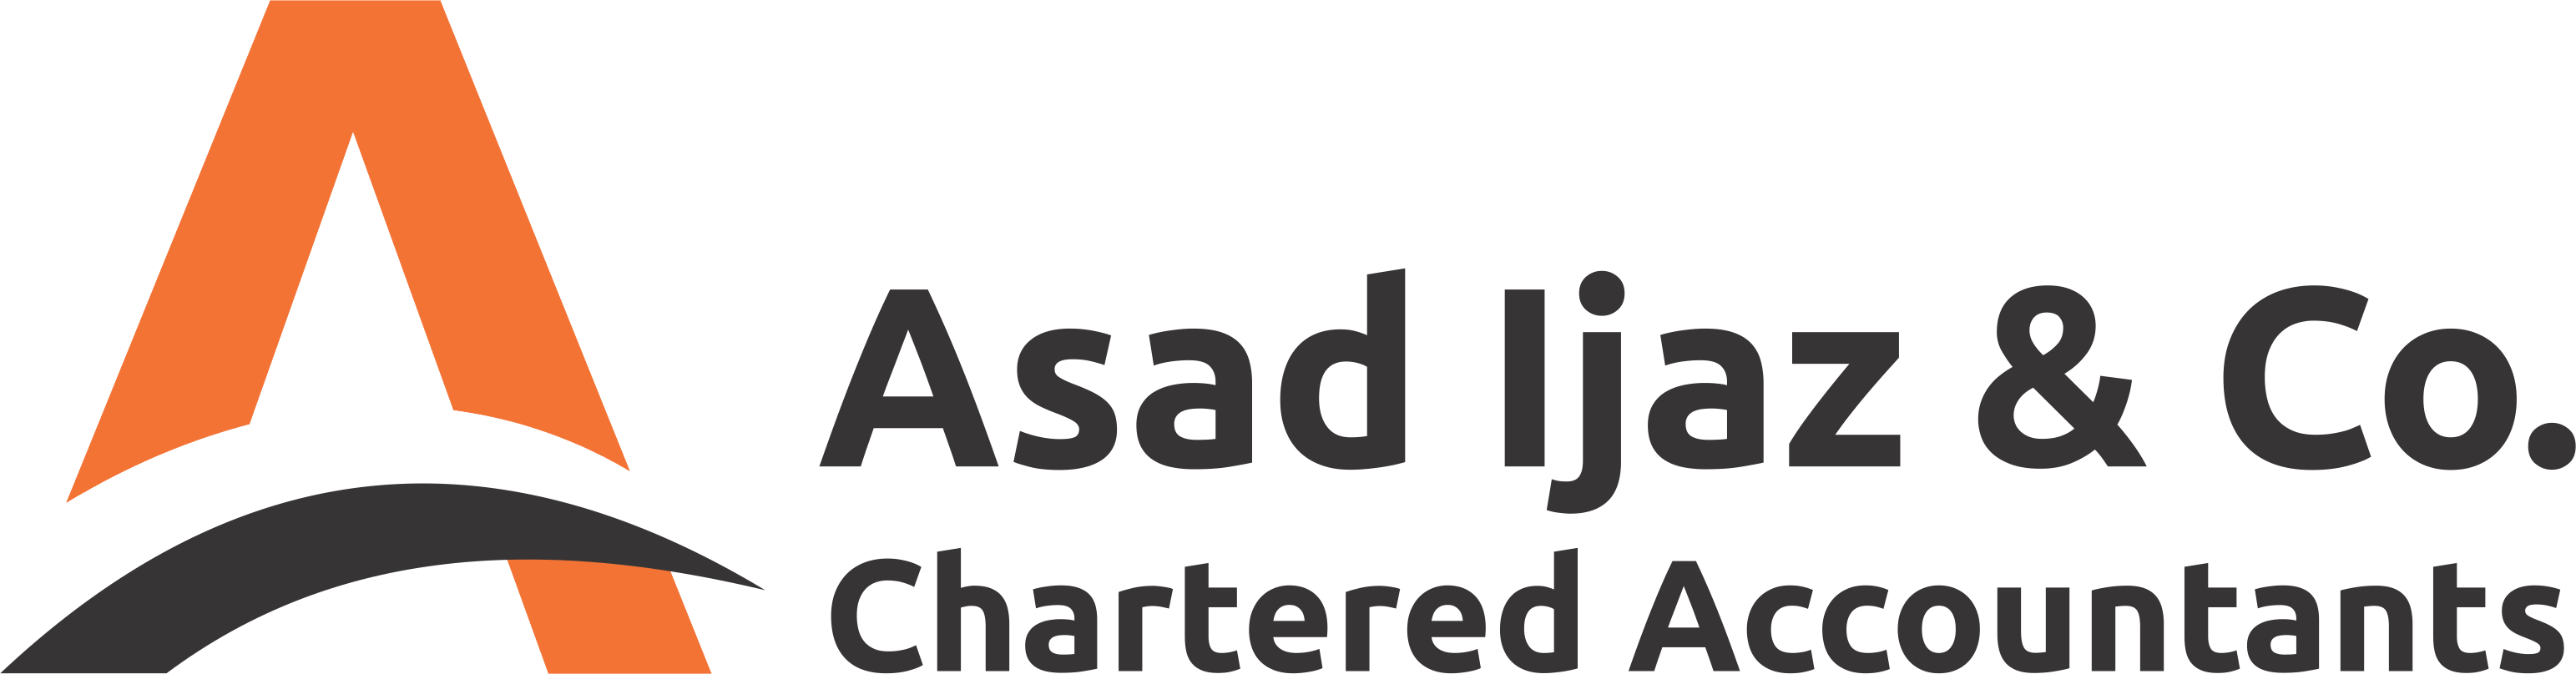 Asad Ijaz & Co., Chartered Accountants